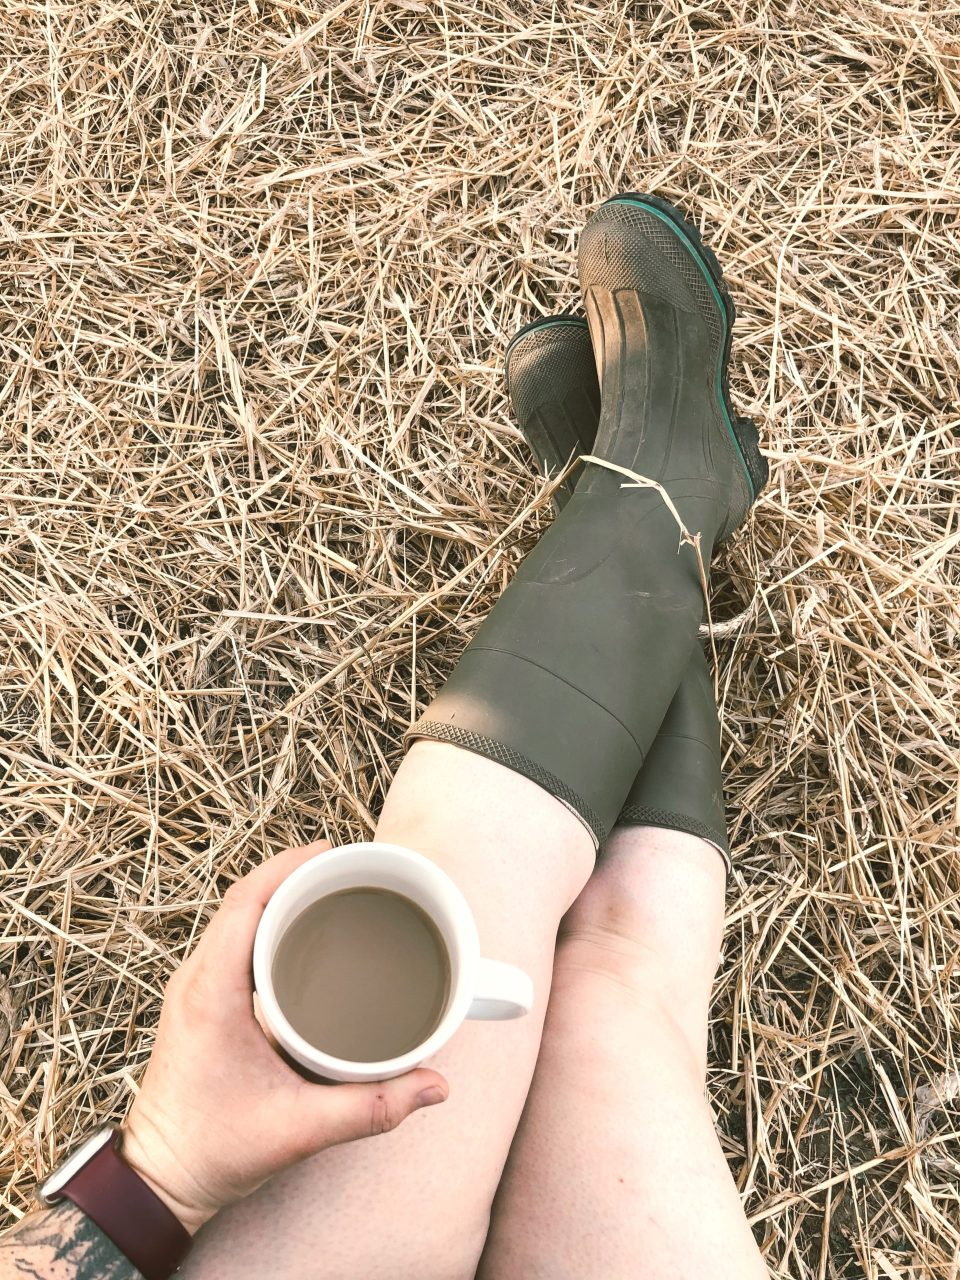 green rubber muck boots with a cup of coffee